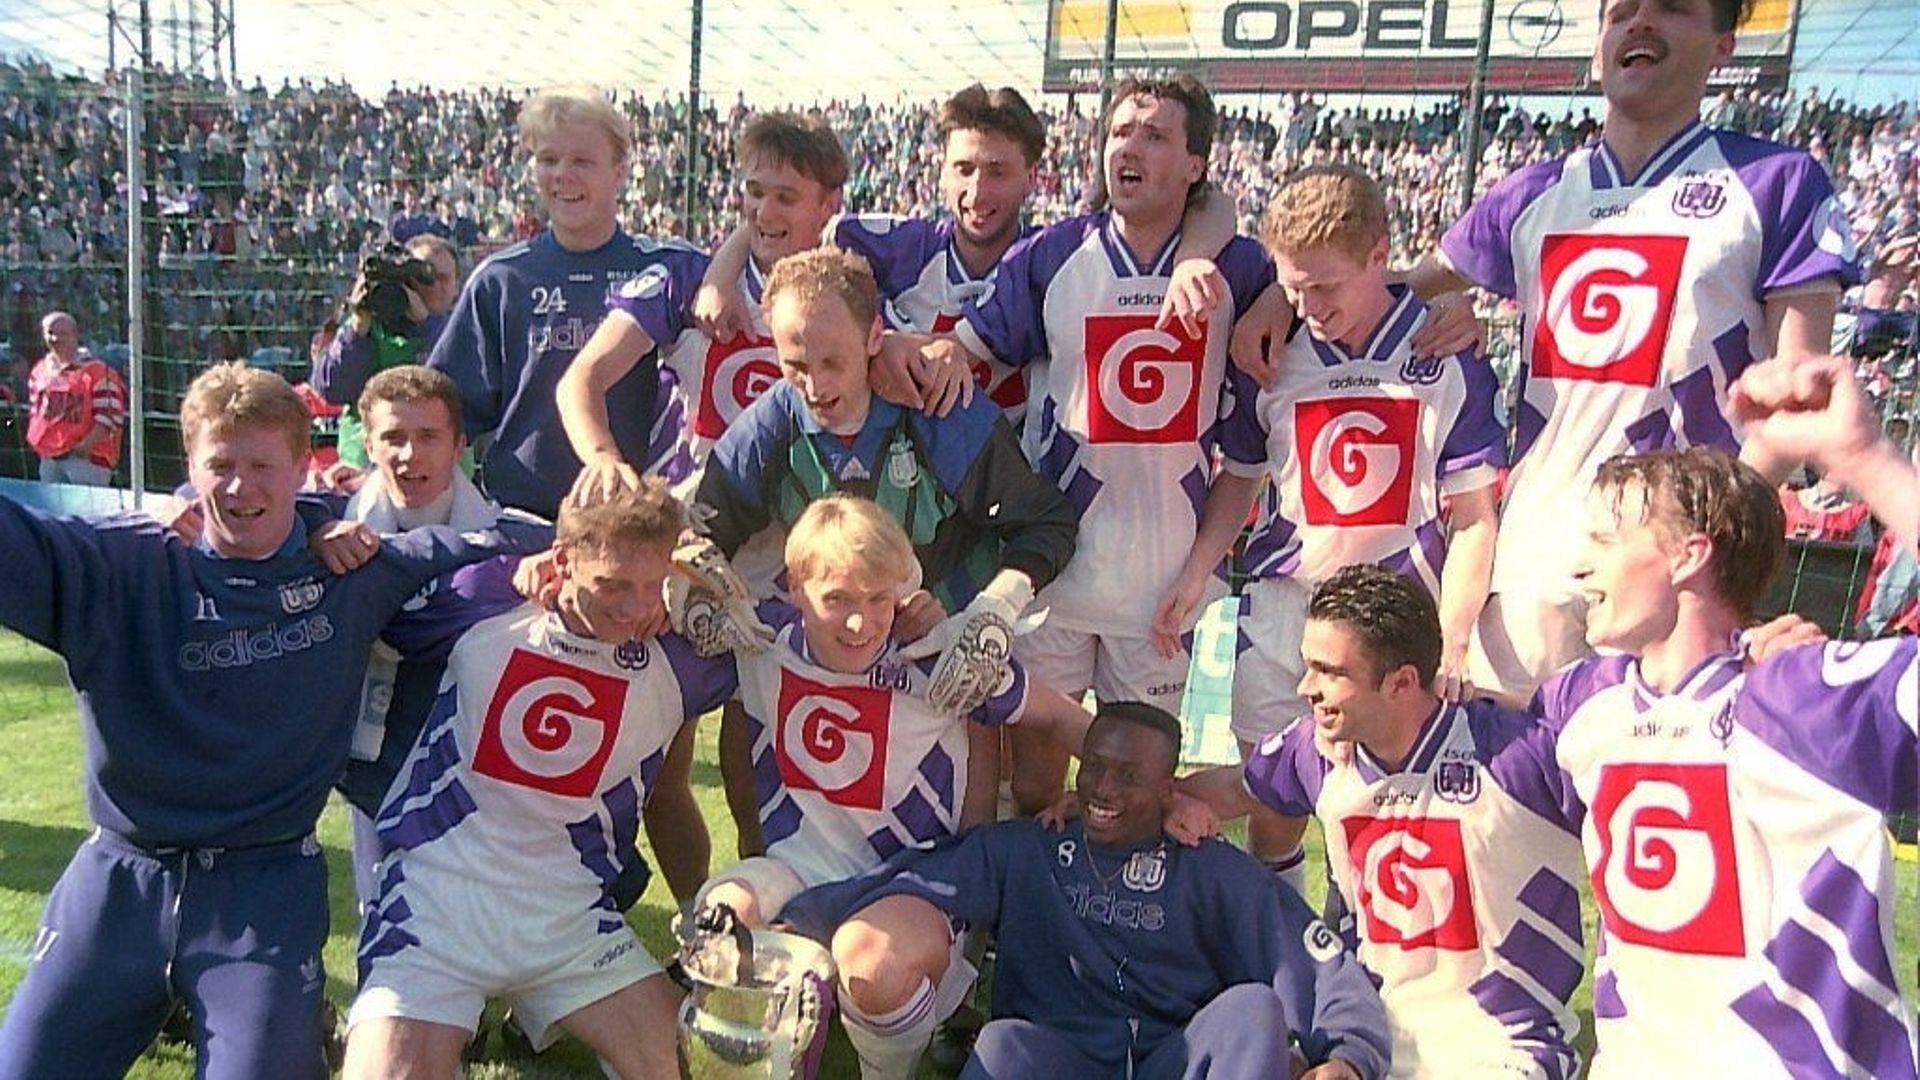 https://www rtbf be/auvio/detail_finale-1994-anderlecht-fc-bruges?id